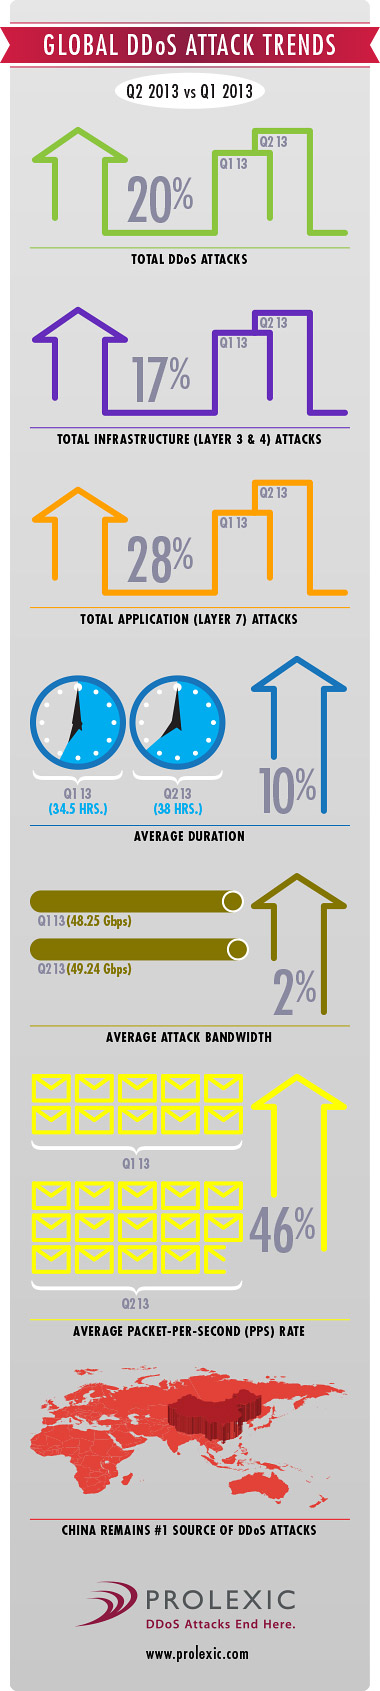 DDoS Attack Metrics for 2013 [Infographic]